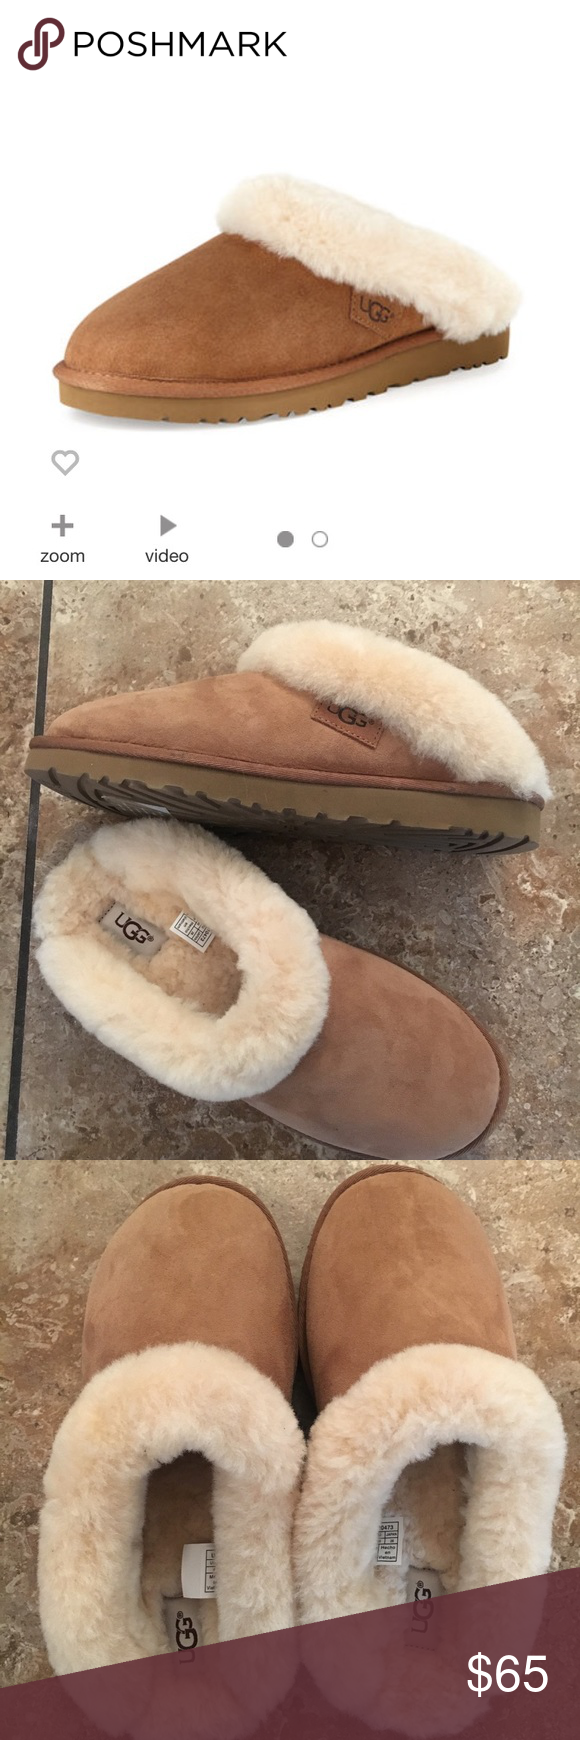 b0f61e1875093 Brand NEW UGG Cluggette Shearling slide slipper NWOT ugg Shearling Suede  and Shearling slipper. So cozy and warm. Fits true to size women's 9. No  box.